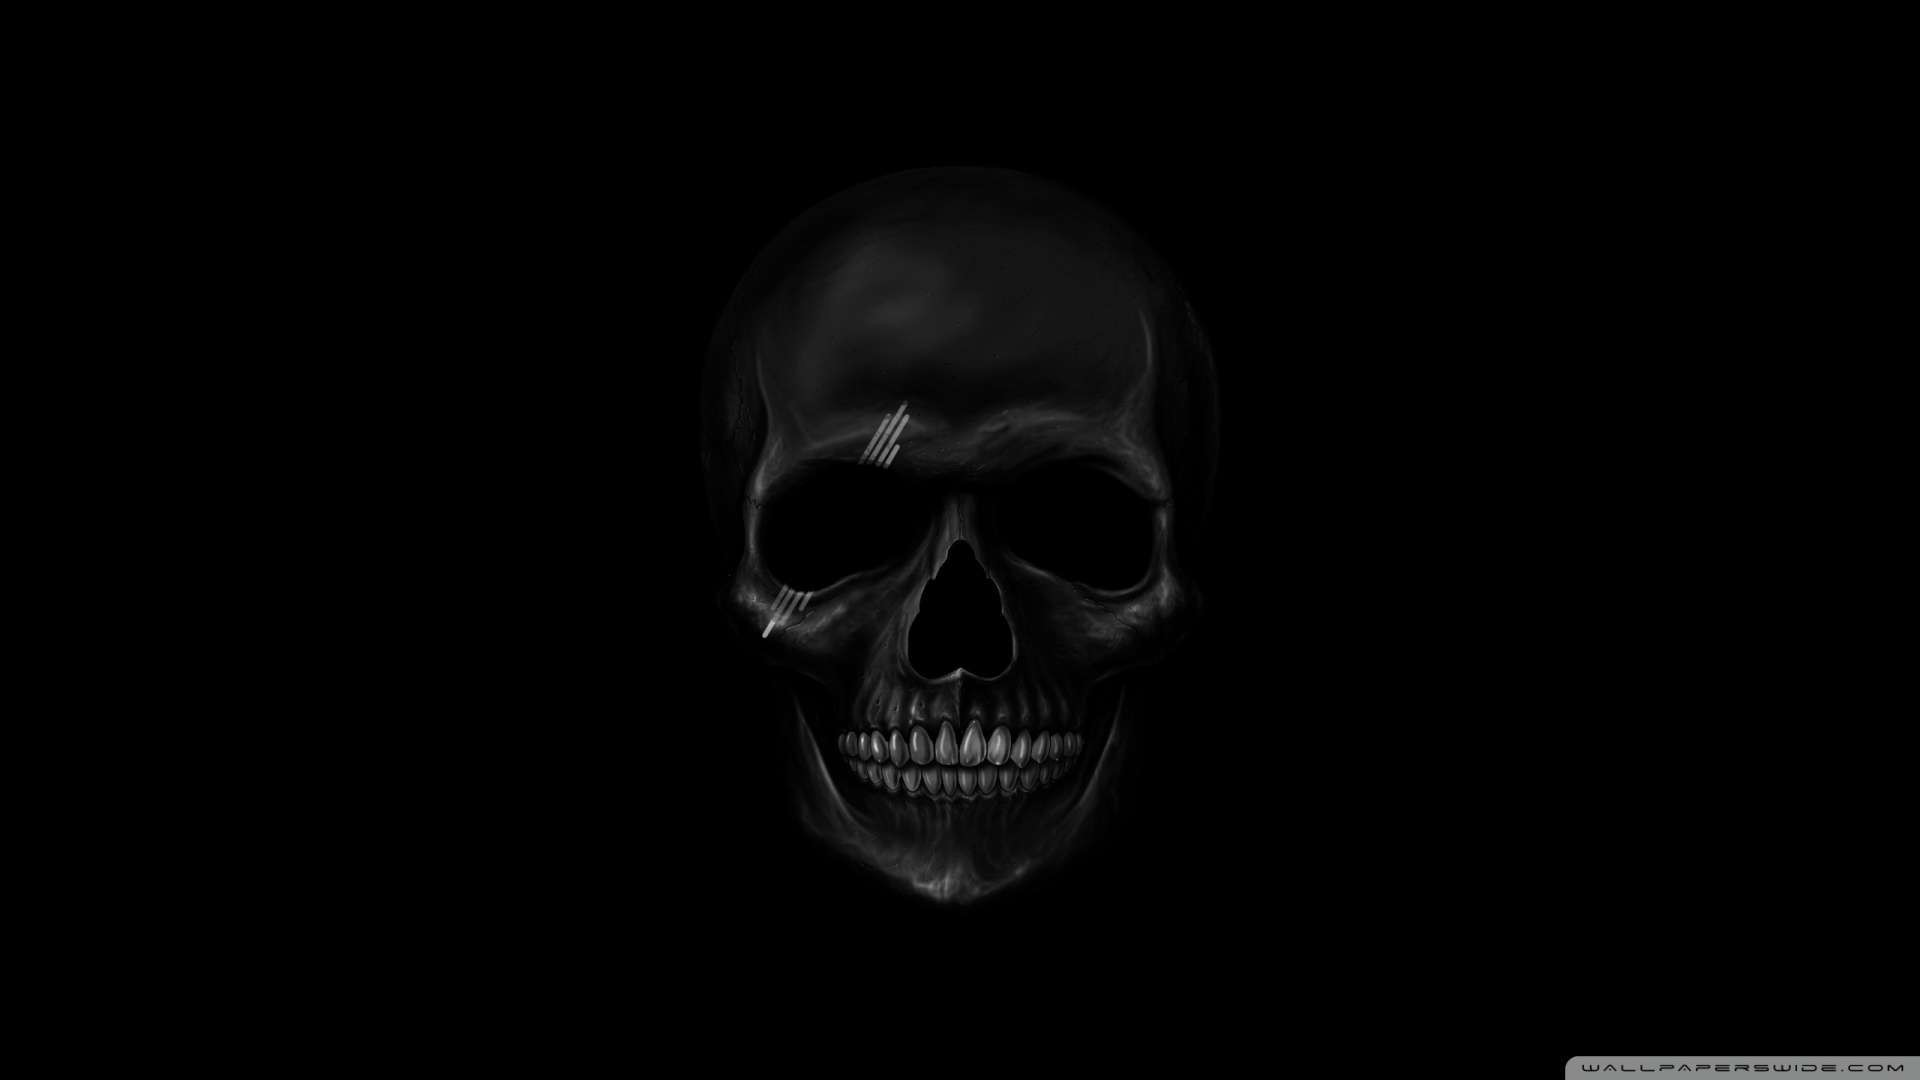 The Most Awesome Set Of High Quality Black Wallpapers To Spice Up High  Resolution Dark Wallpapers Wallpapers)